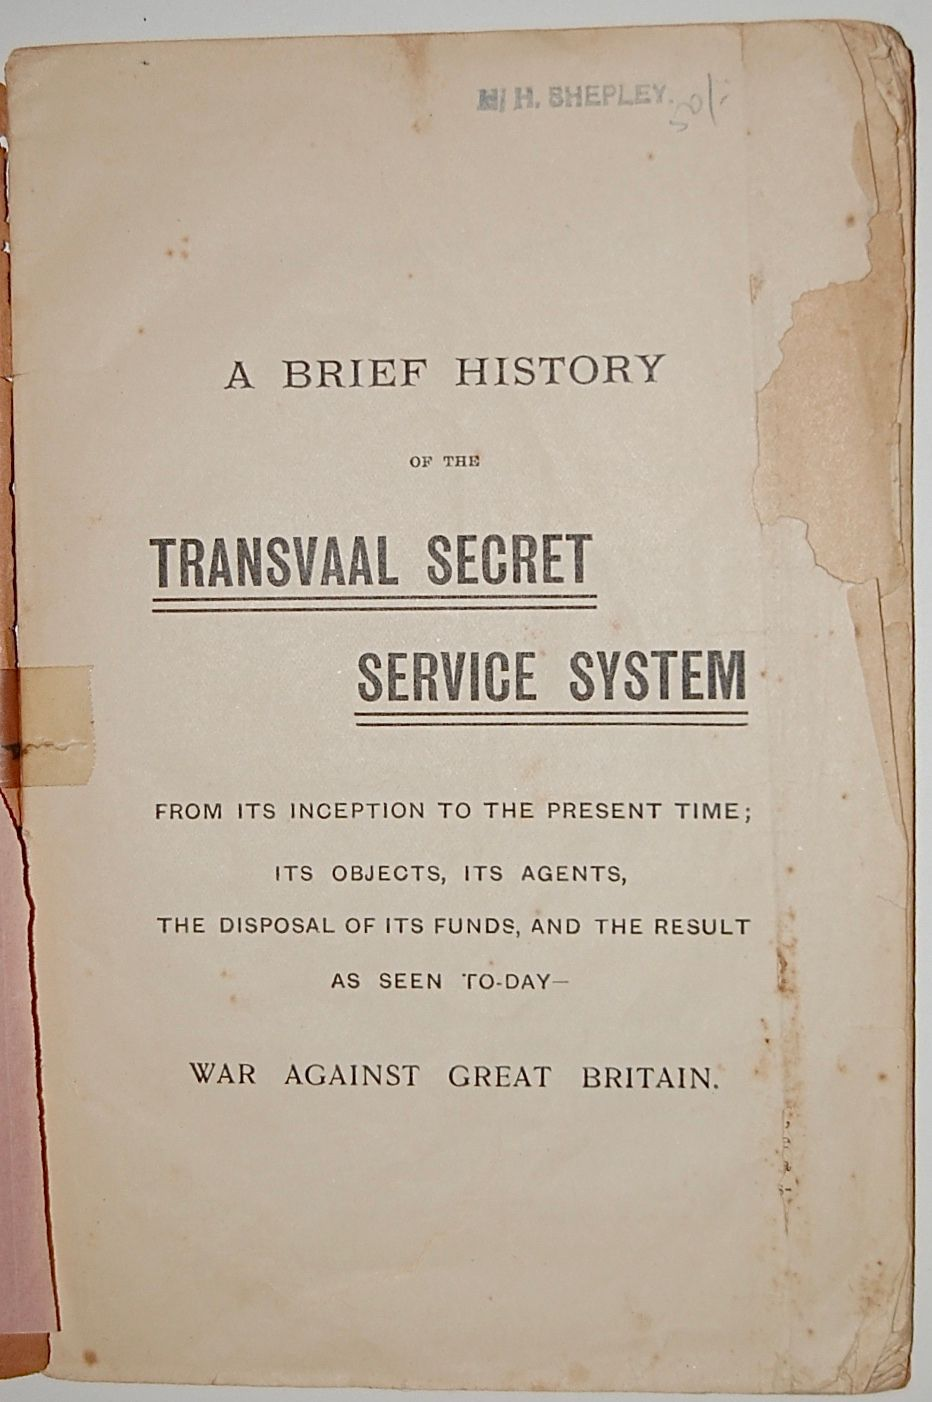 A Brief History of the Transvaal Secret Service System.